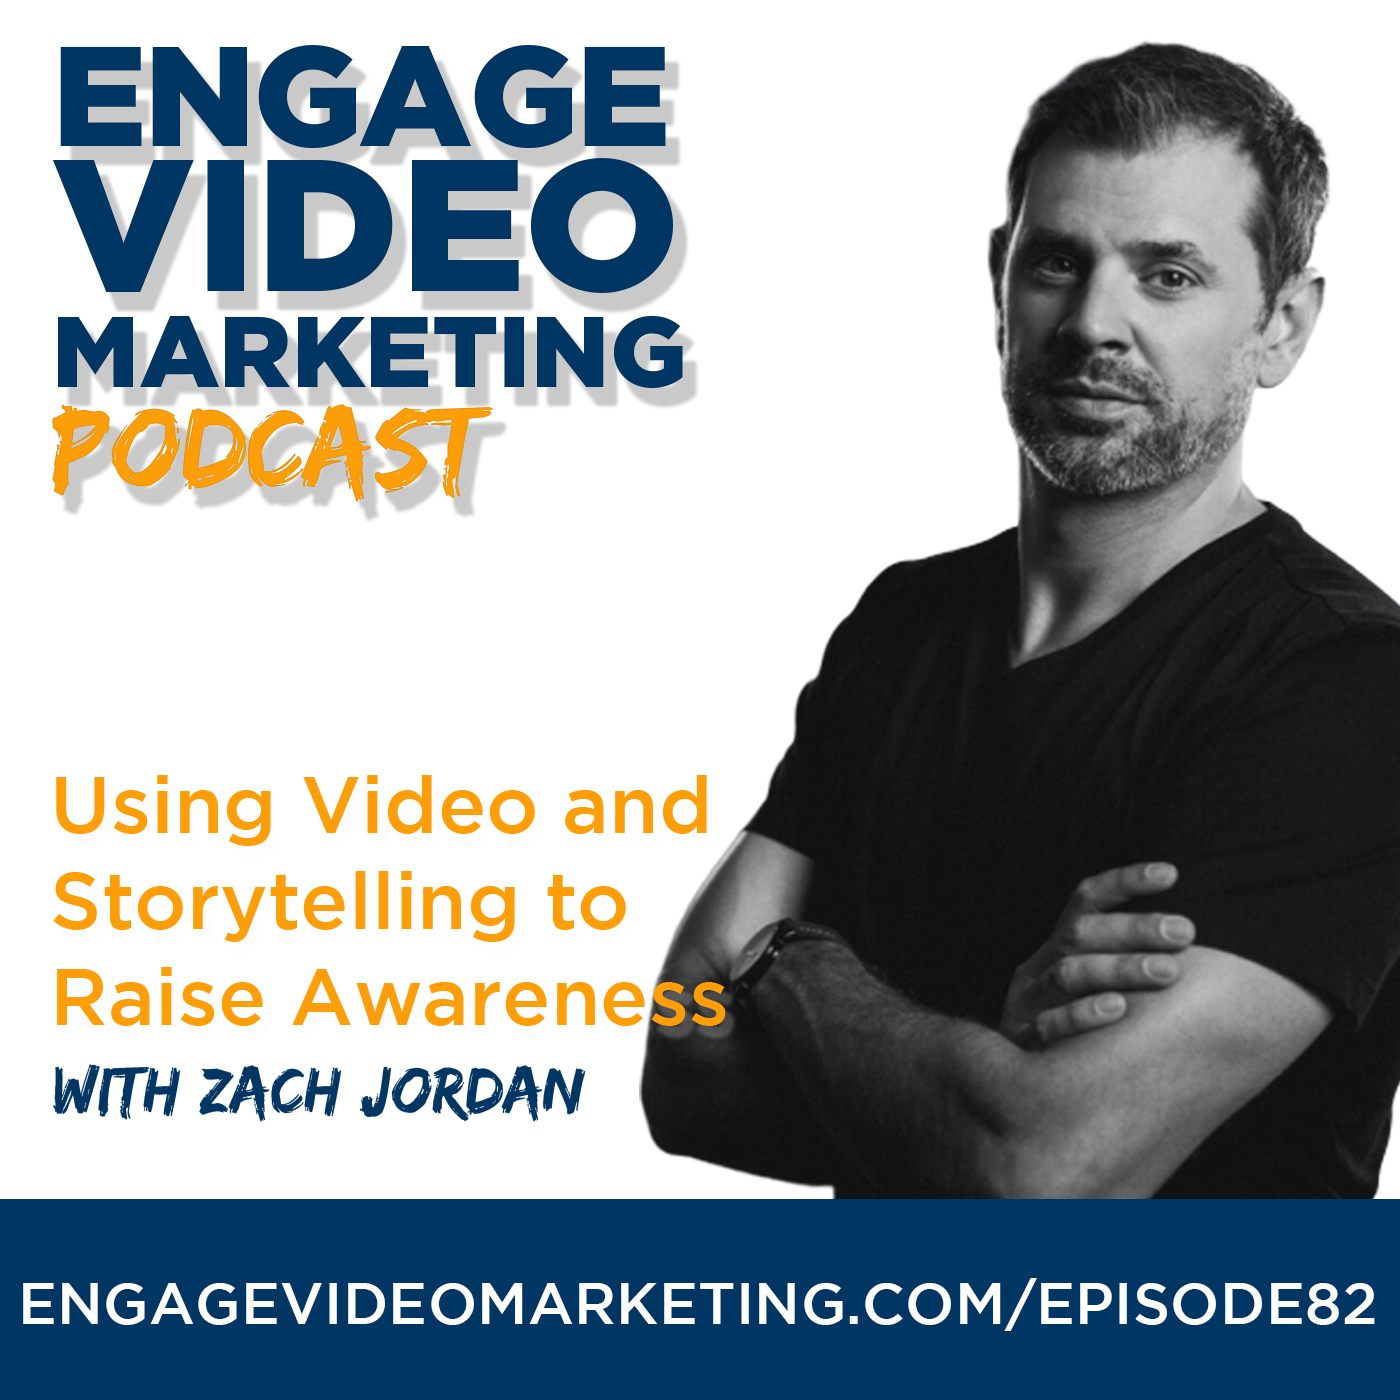 Using Video and Storytelling to Raise Awareness with Zach Jordan